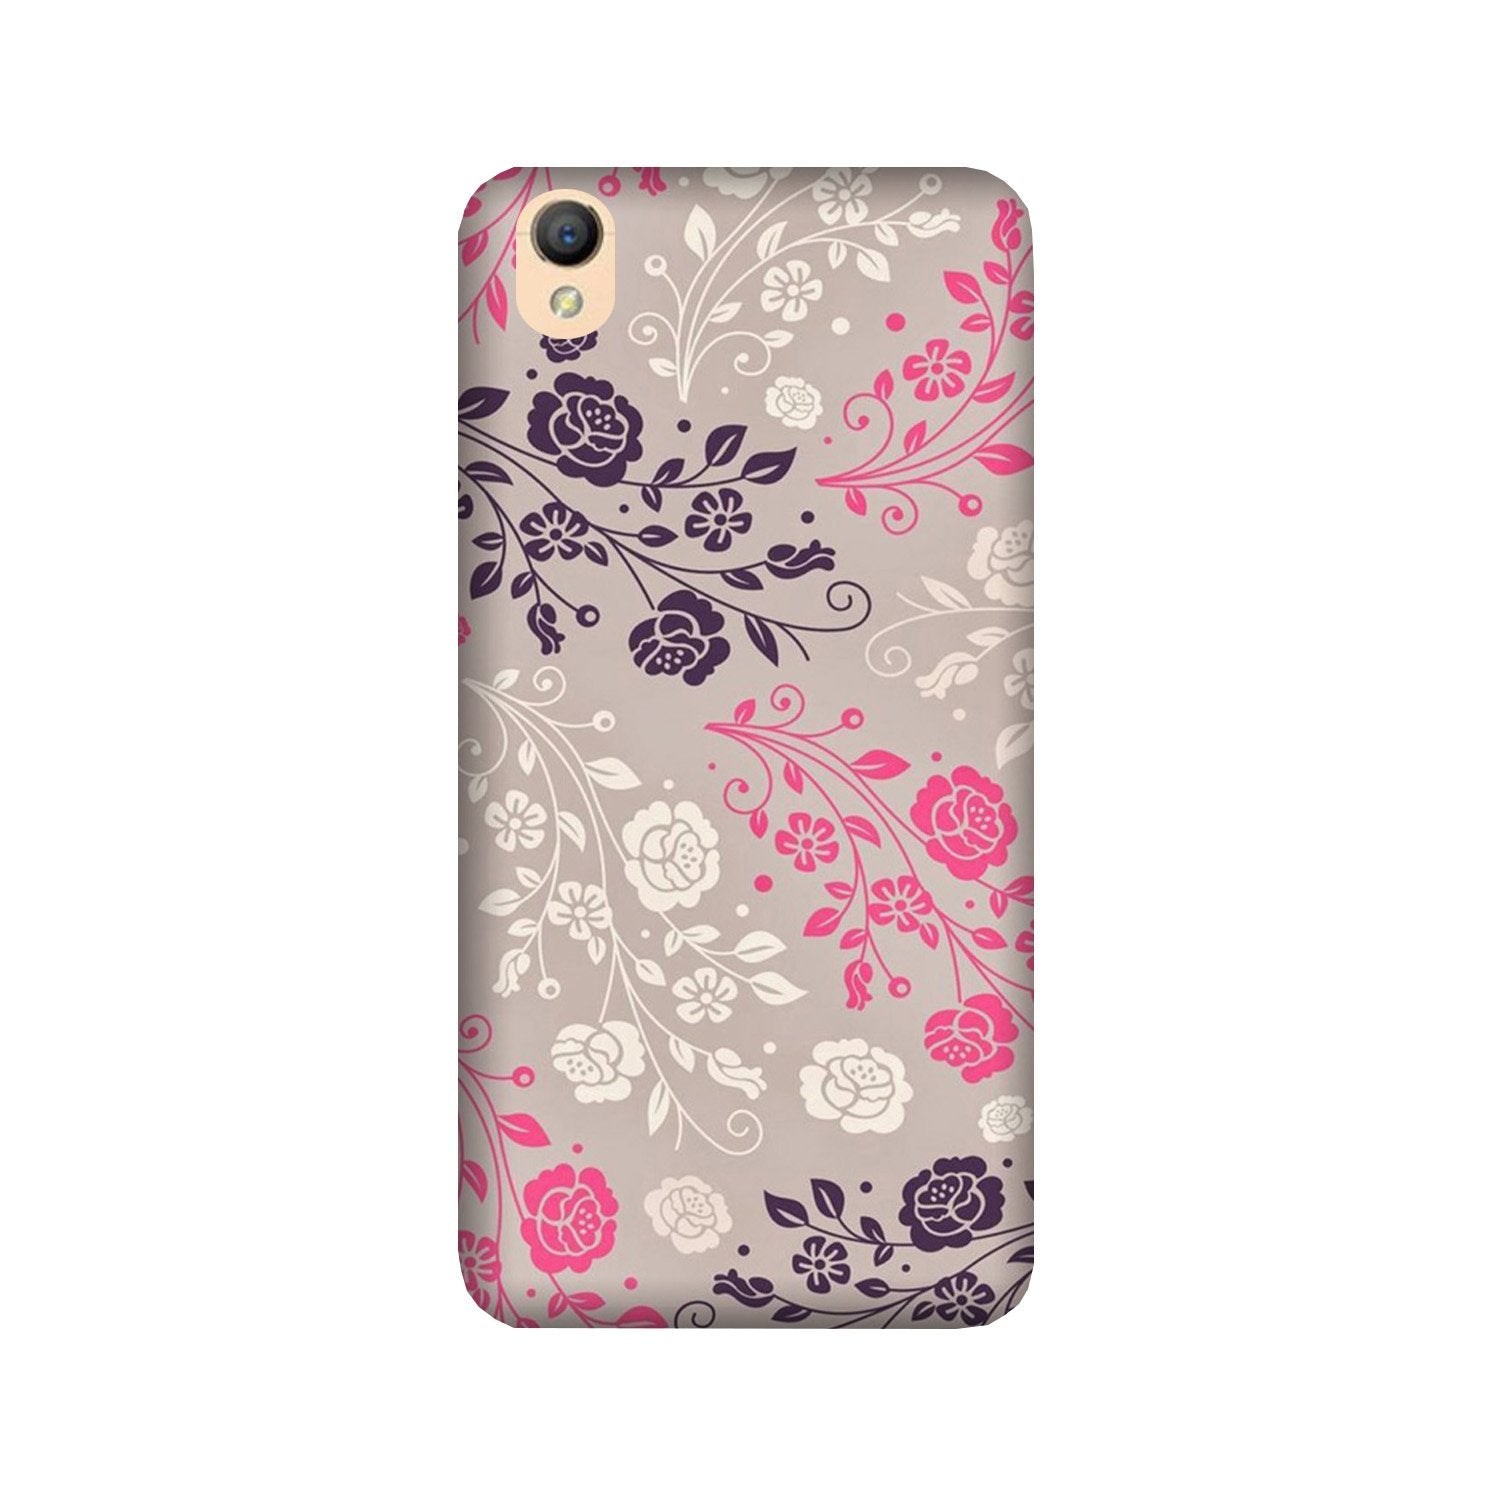 Pattern2 Case for Oppo A37